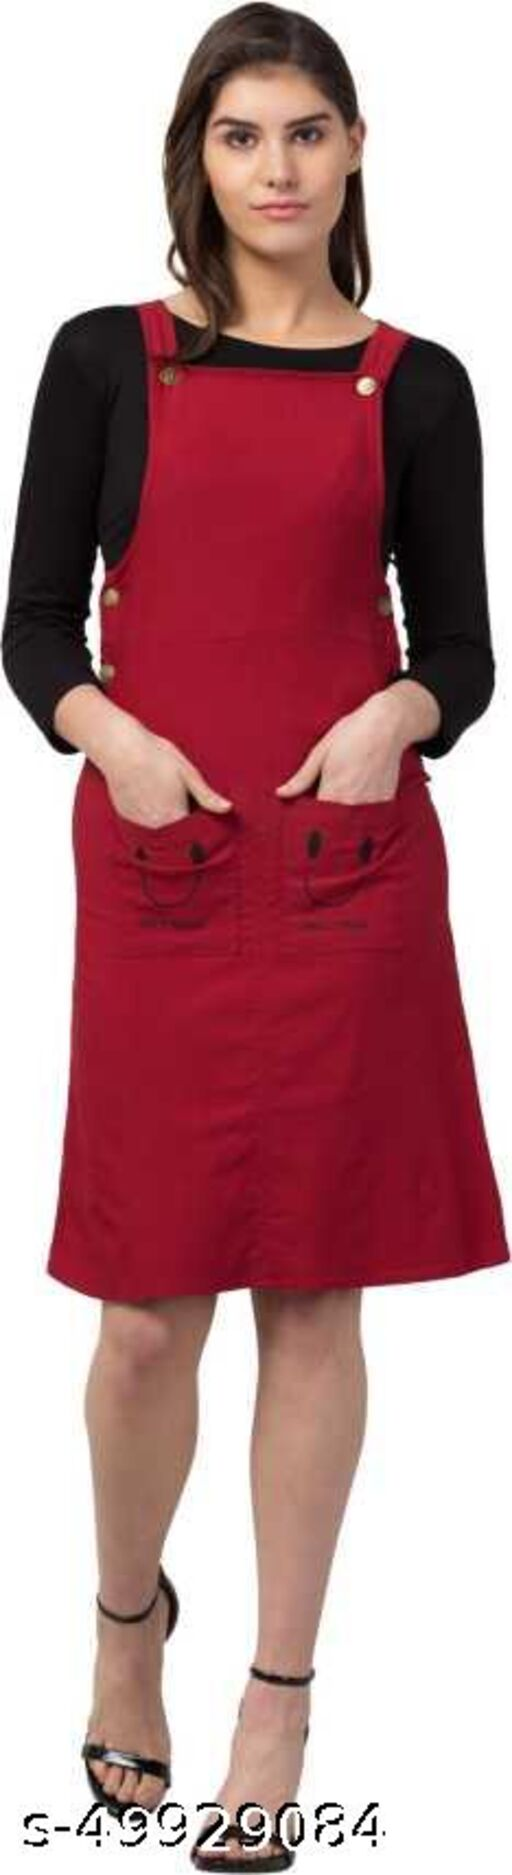 RED SMILEY Dresses